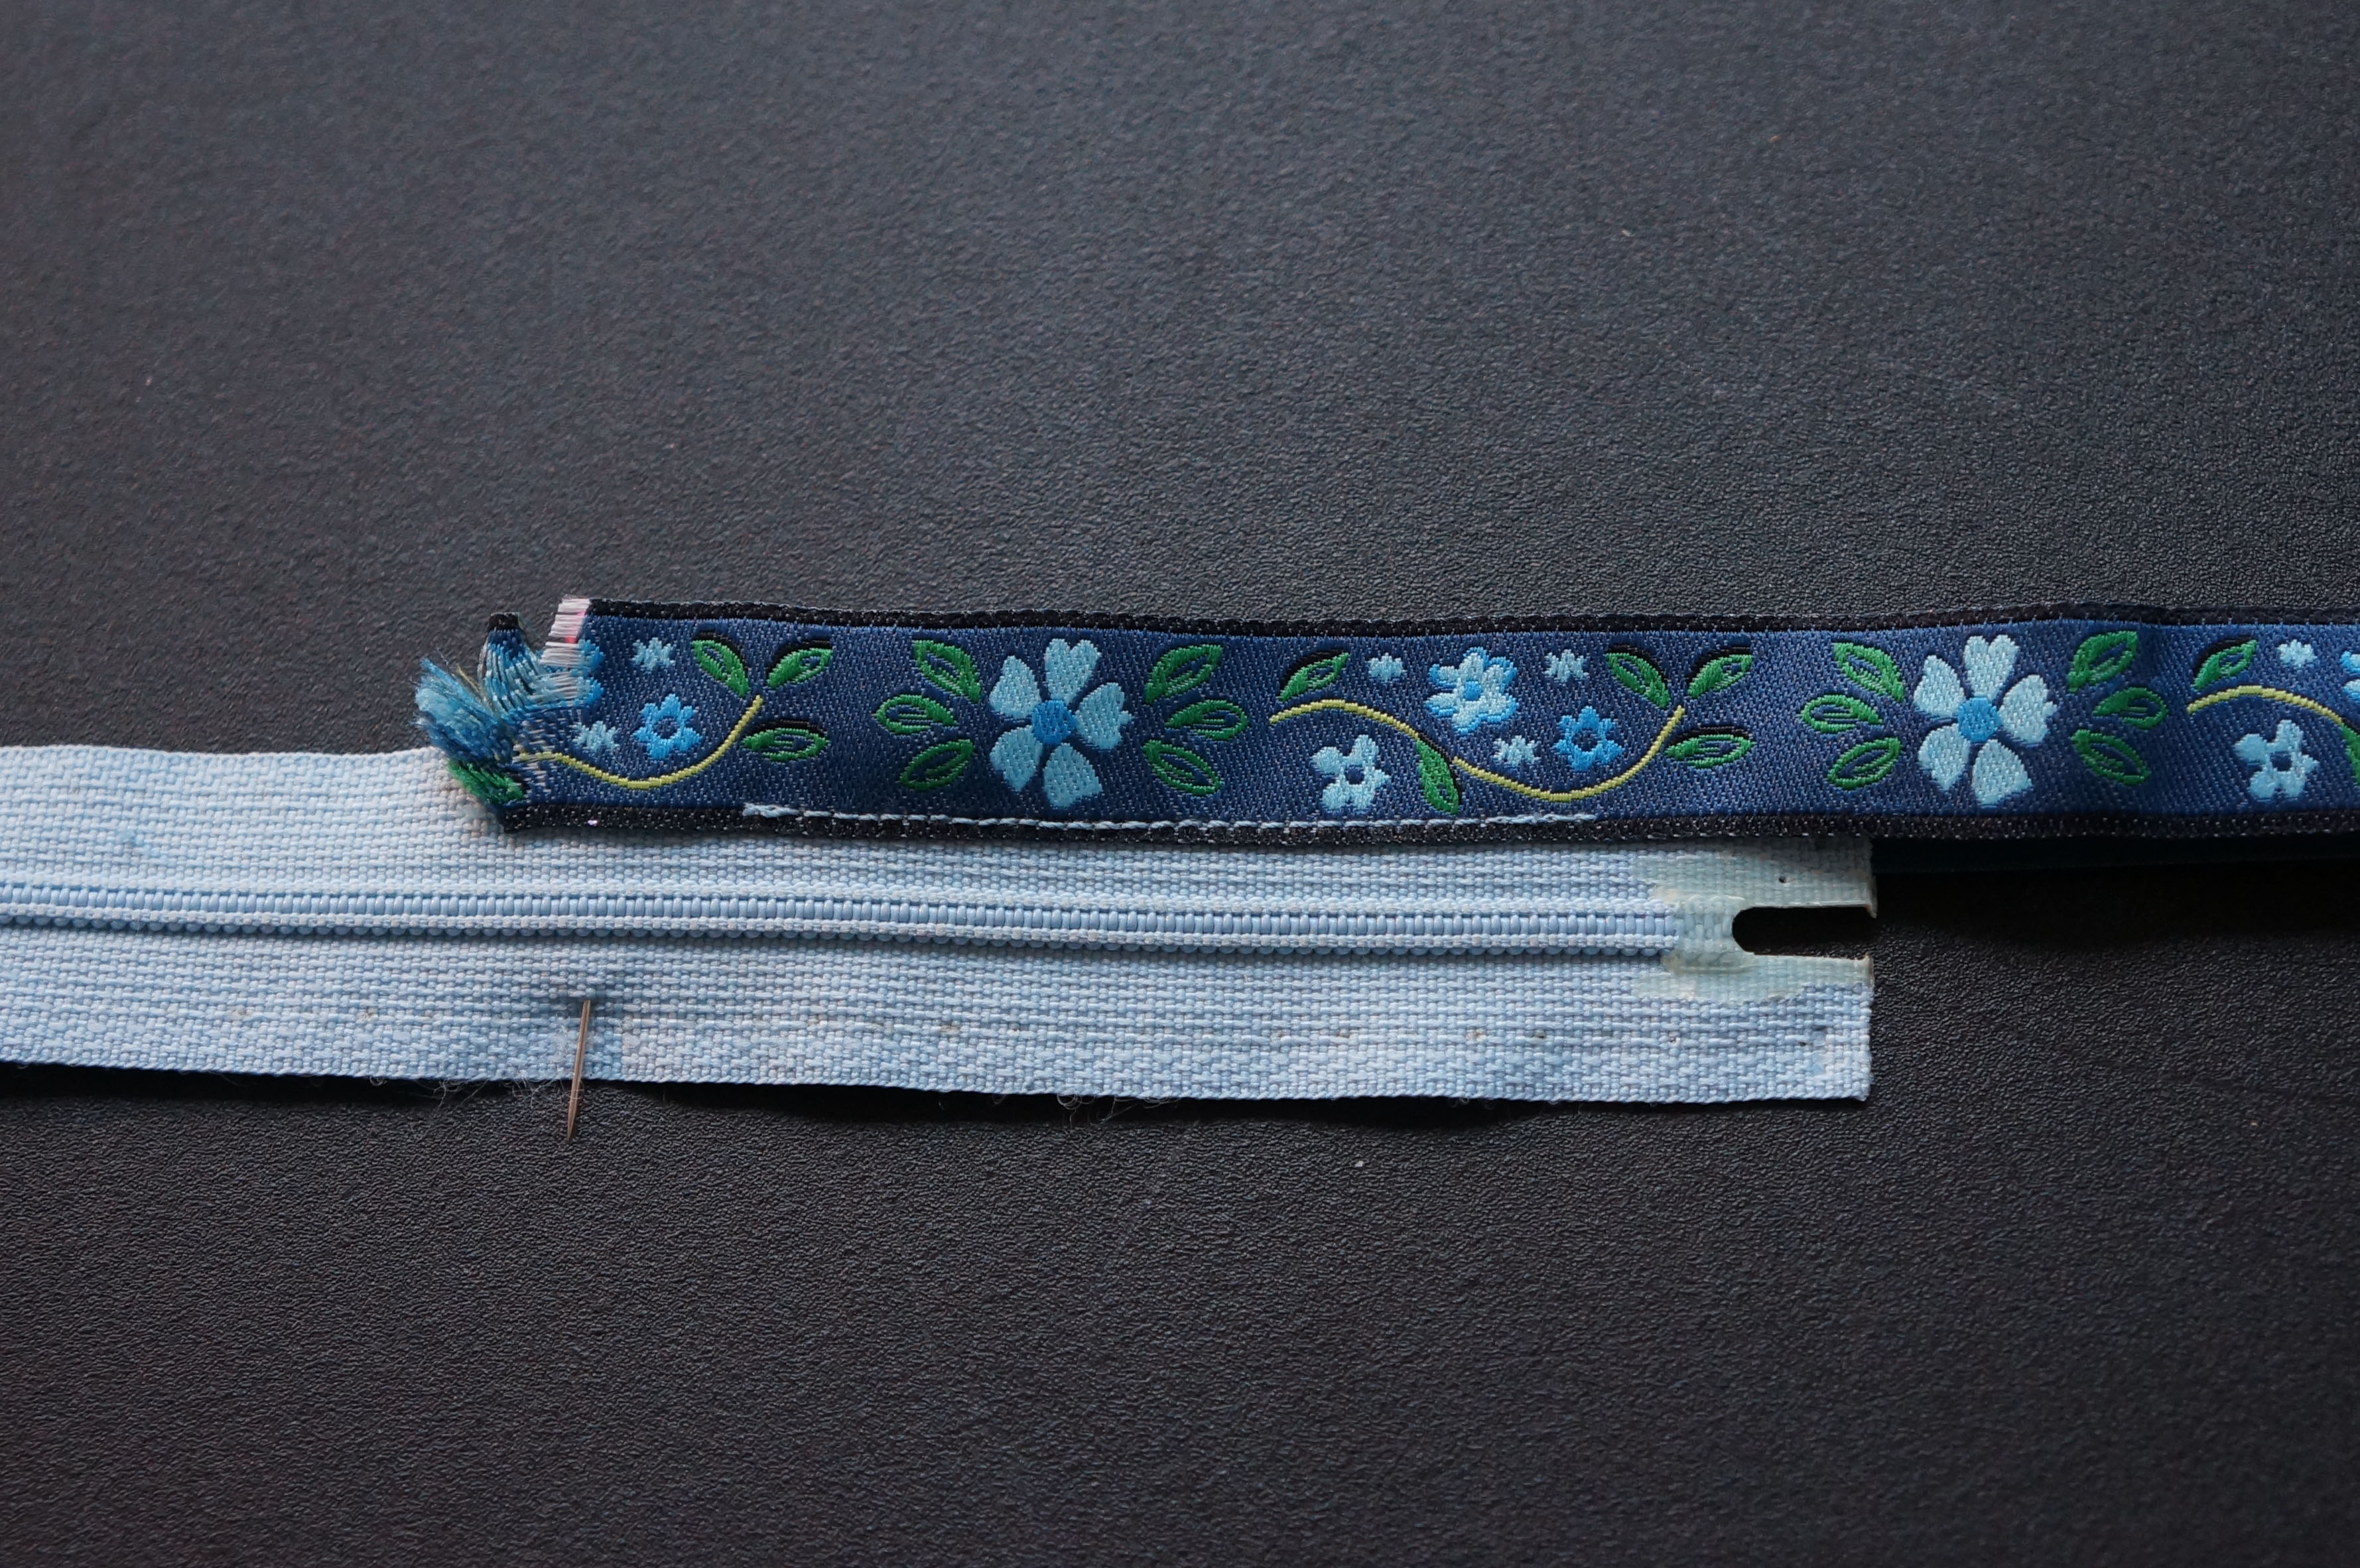 Picture of Sew Base of Pouch